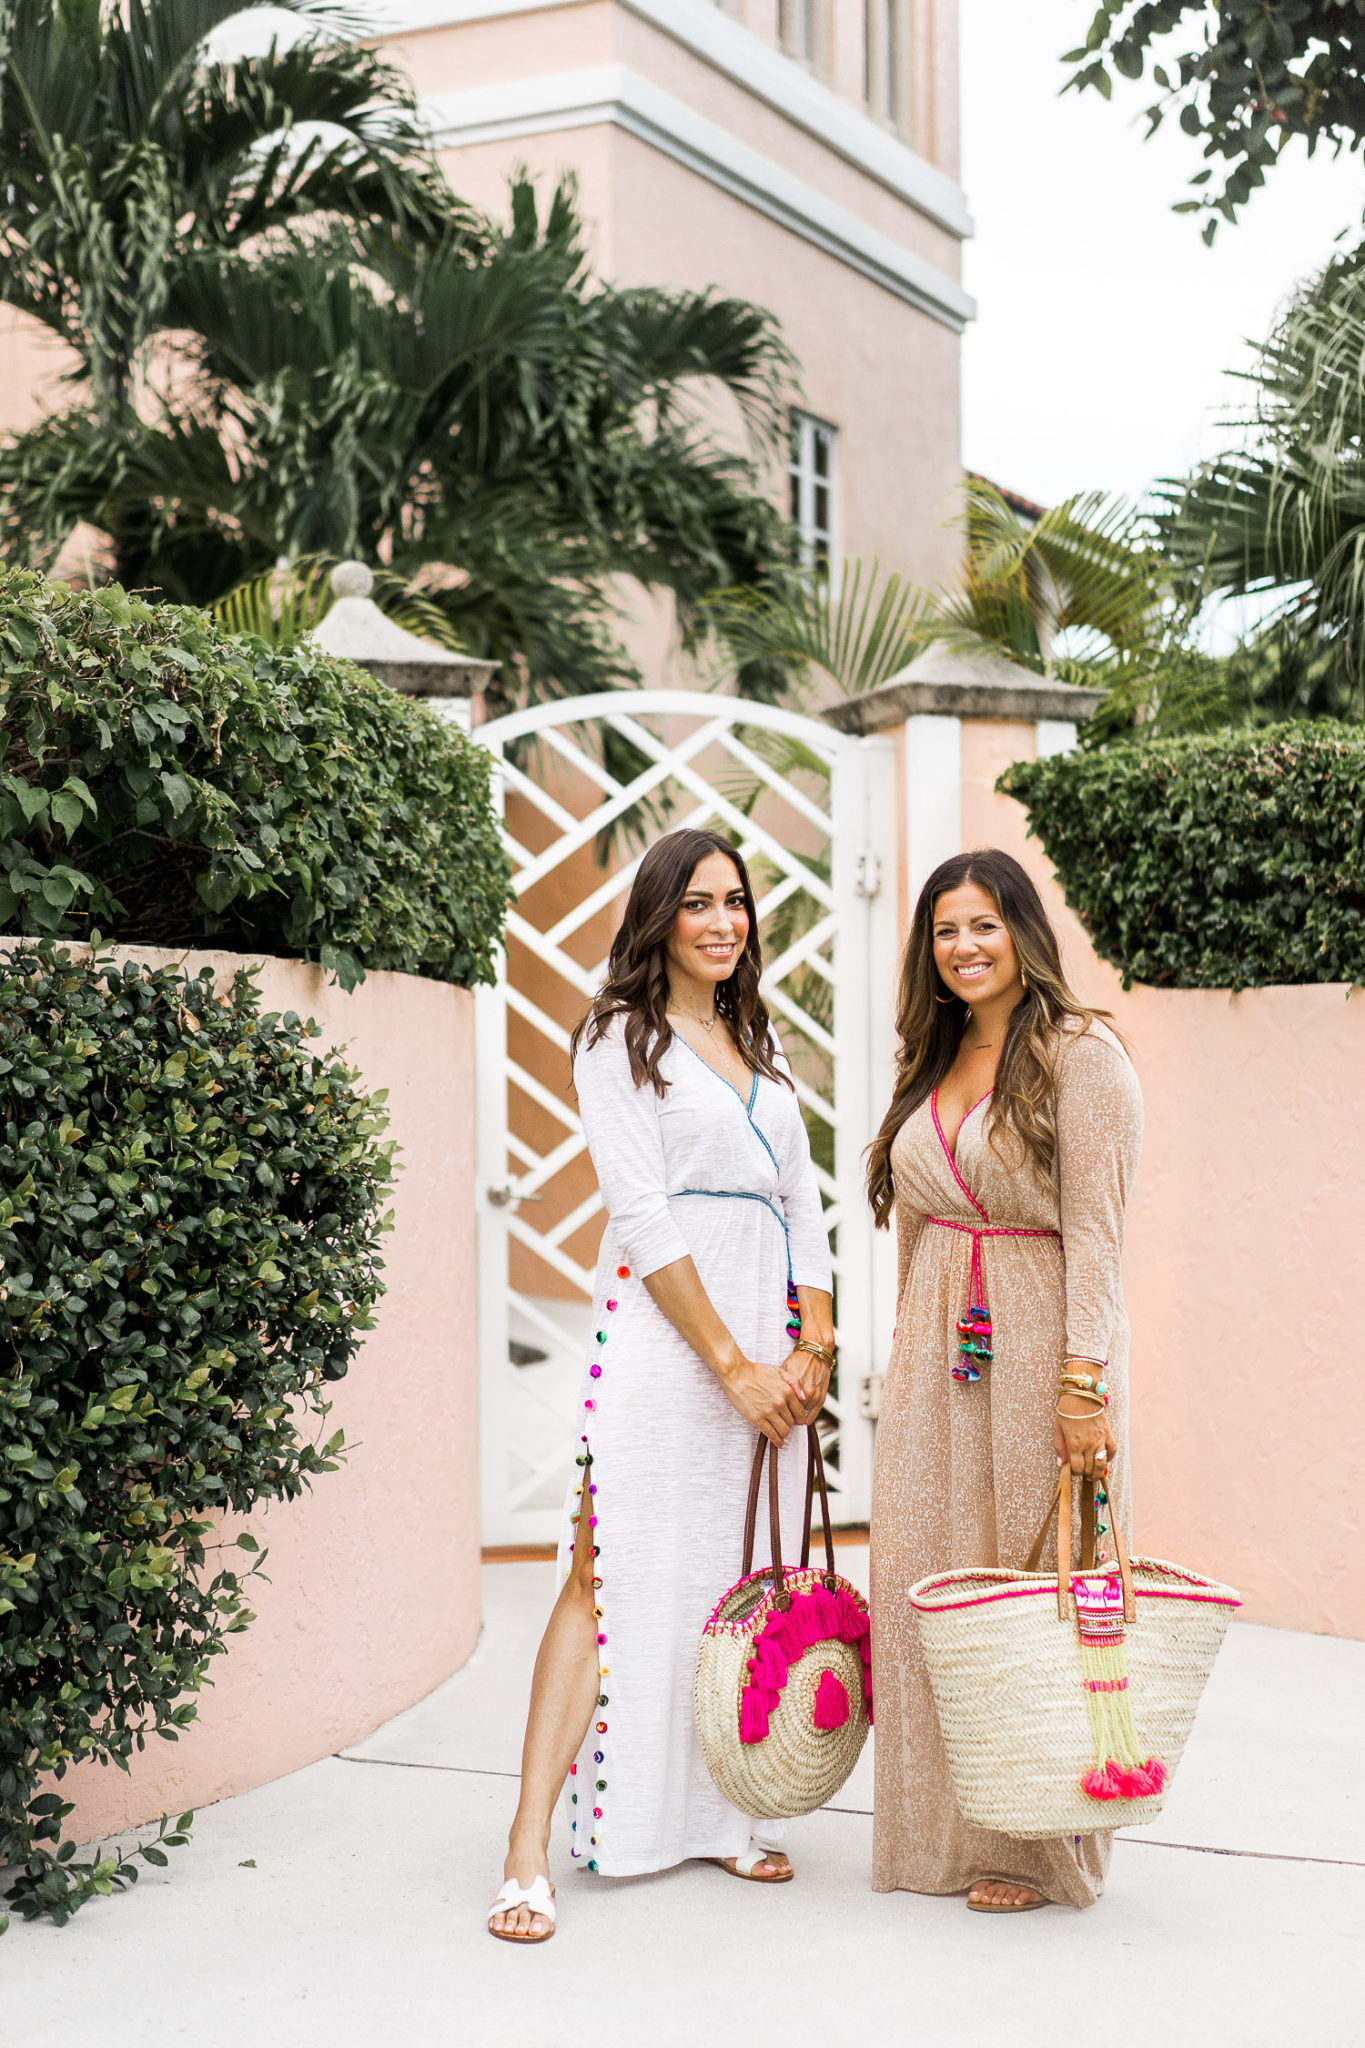 124794cb7ae4 ... South Florida bloggers Amanda of A Glam Lifestyle and Jaime of  Sunflowers and Stilettos share their ...